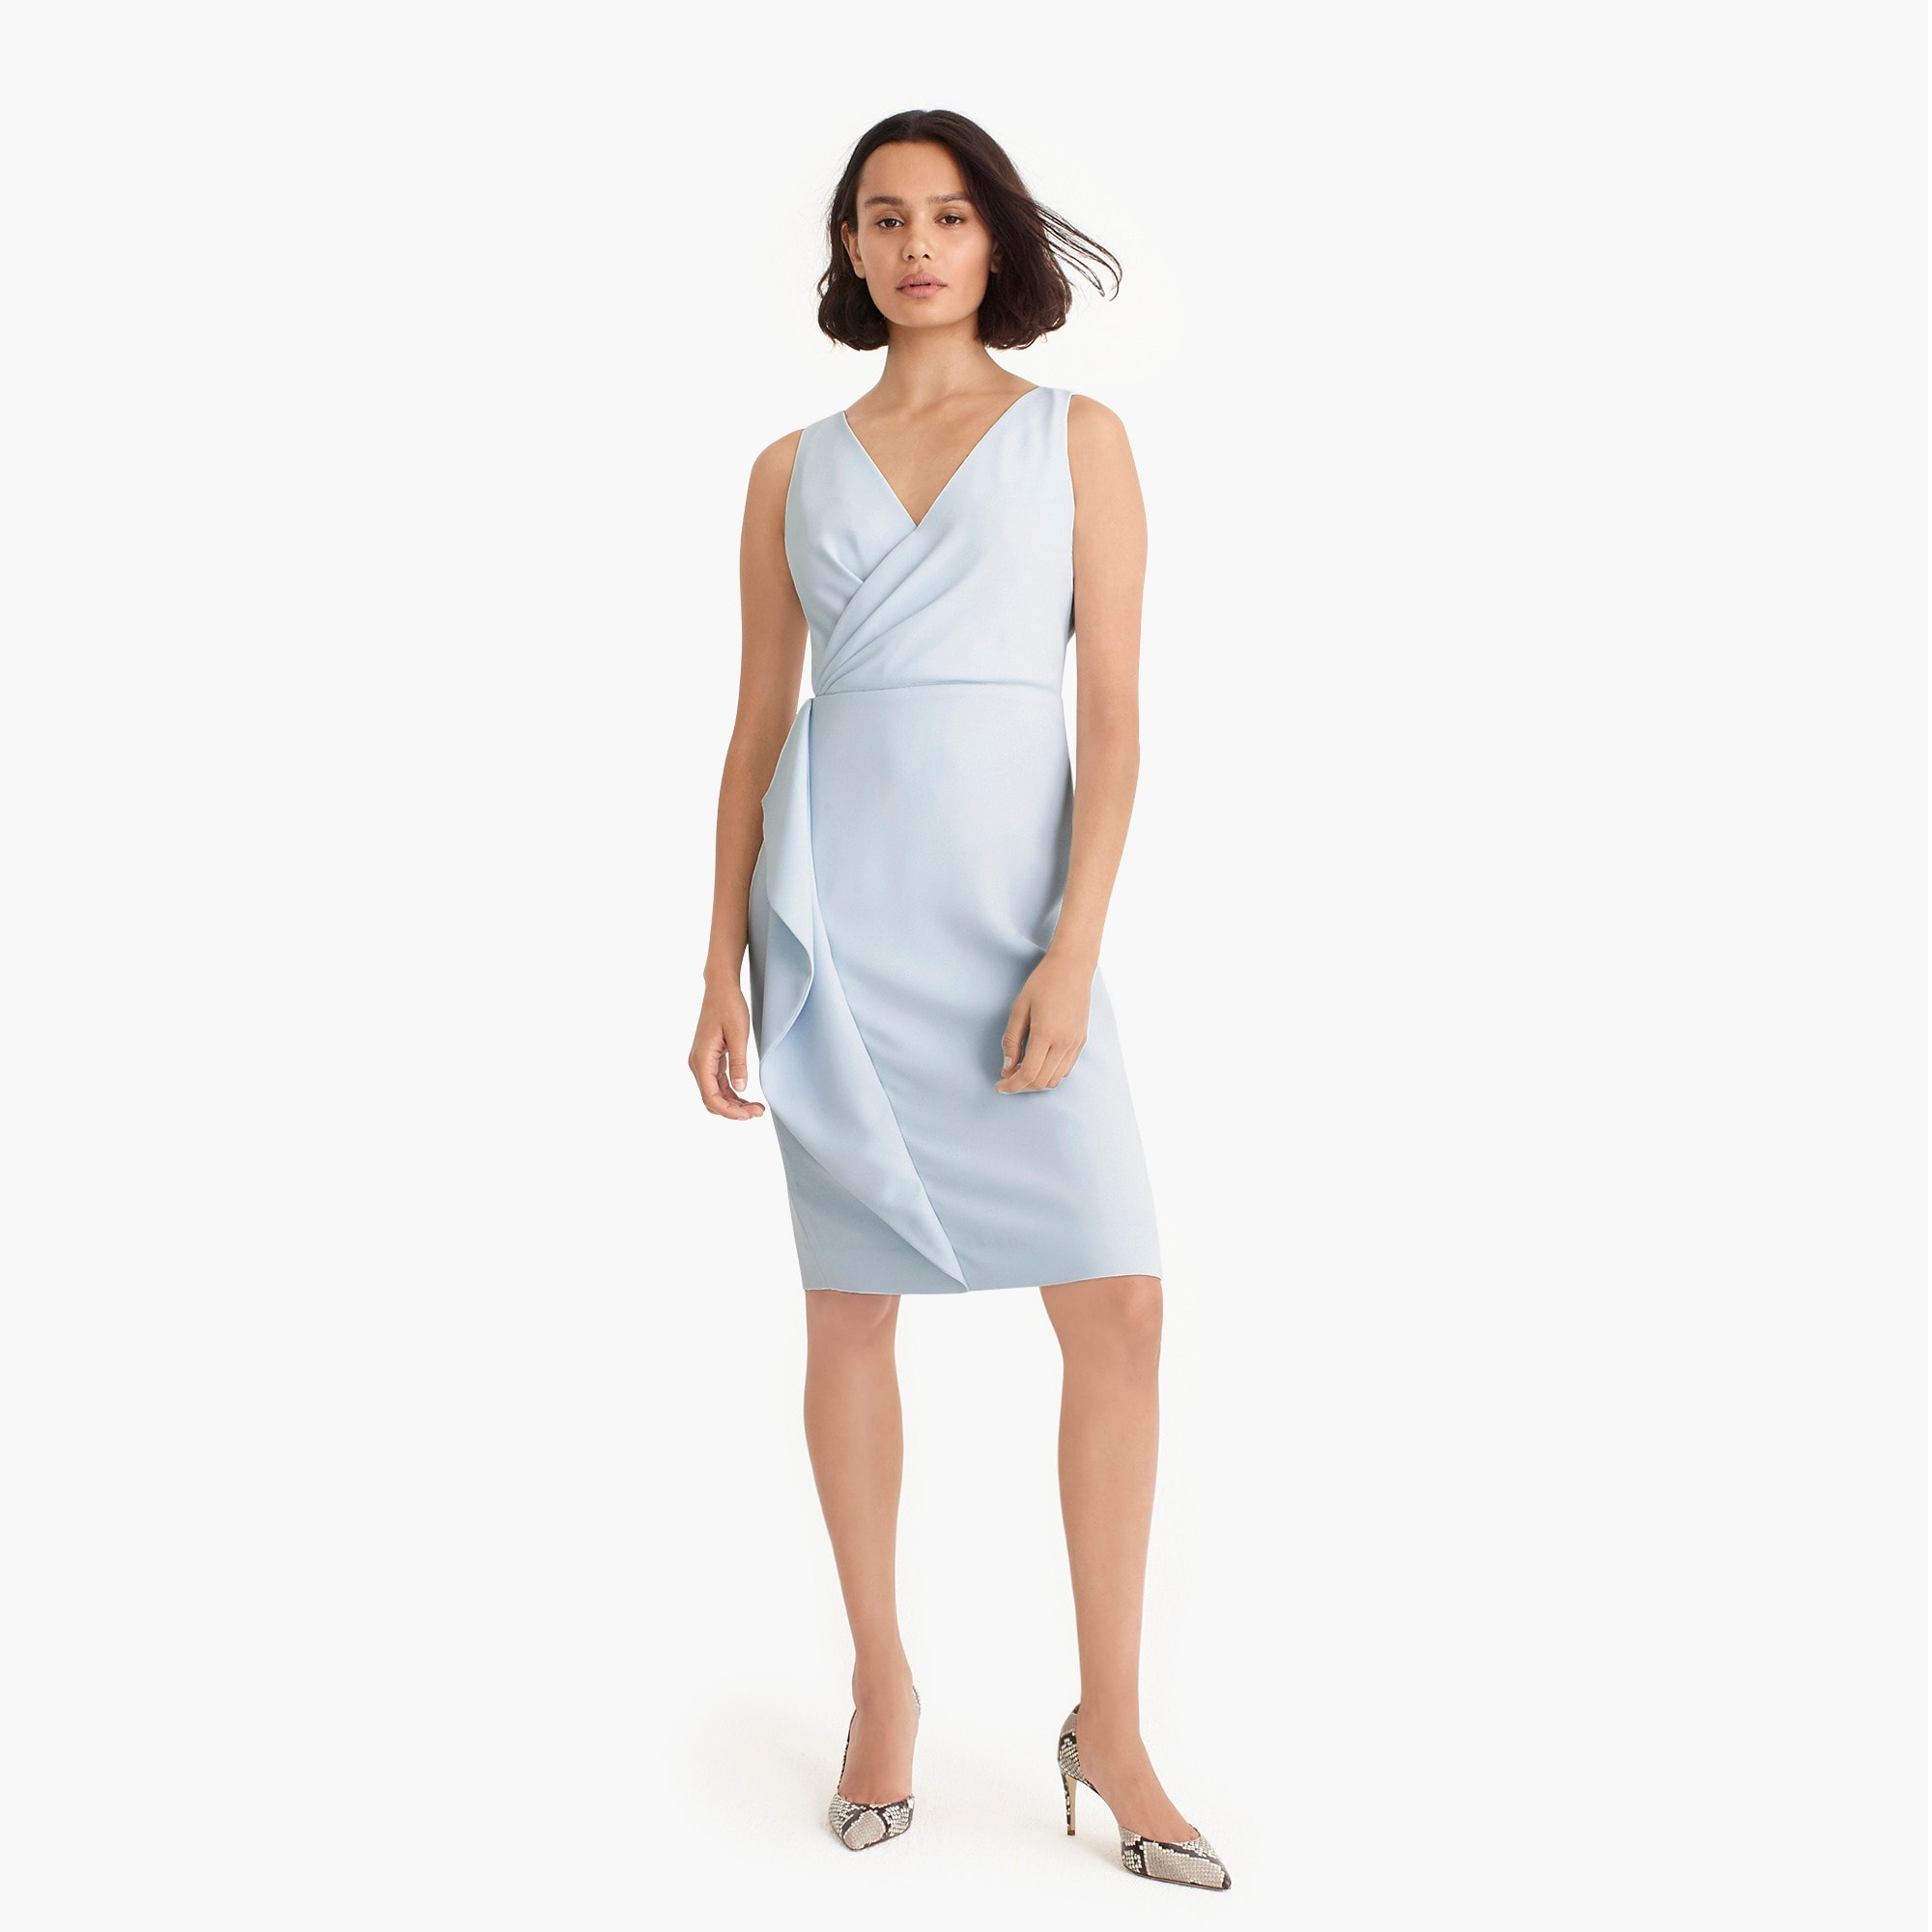 Image 4 for Side-sash dress in 365 crepe